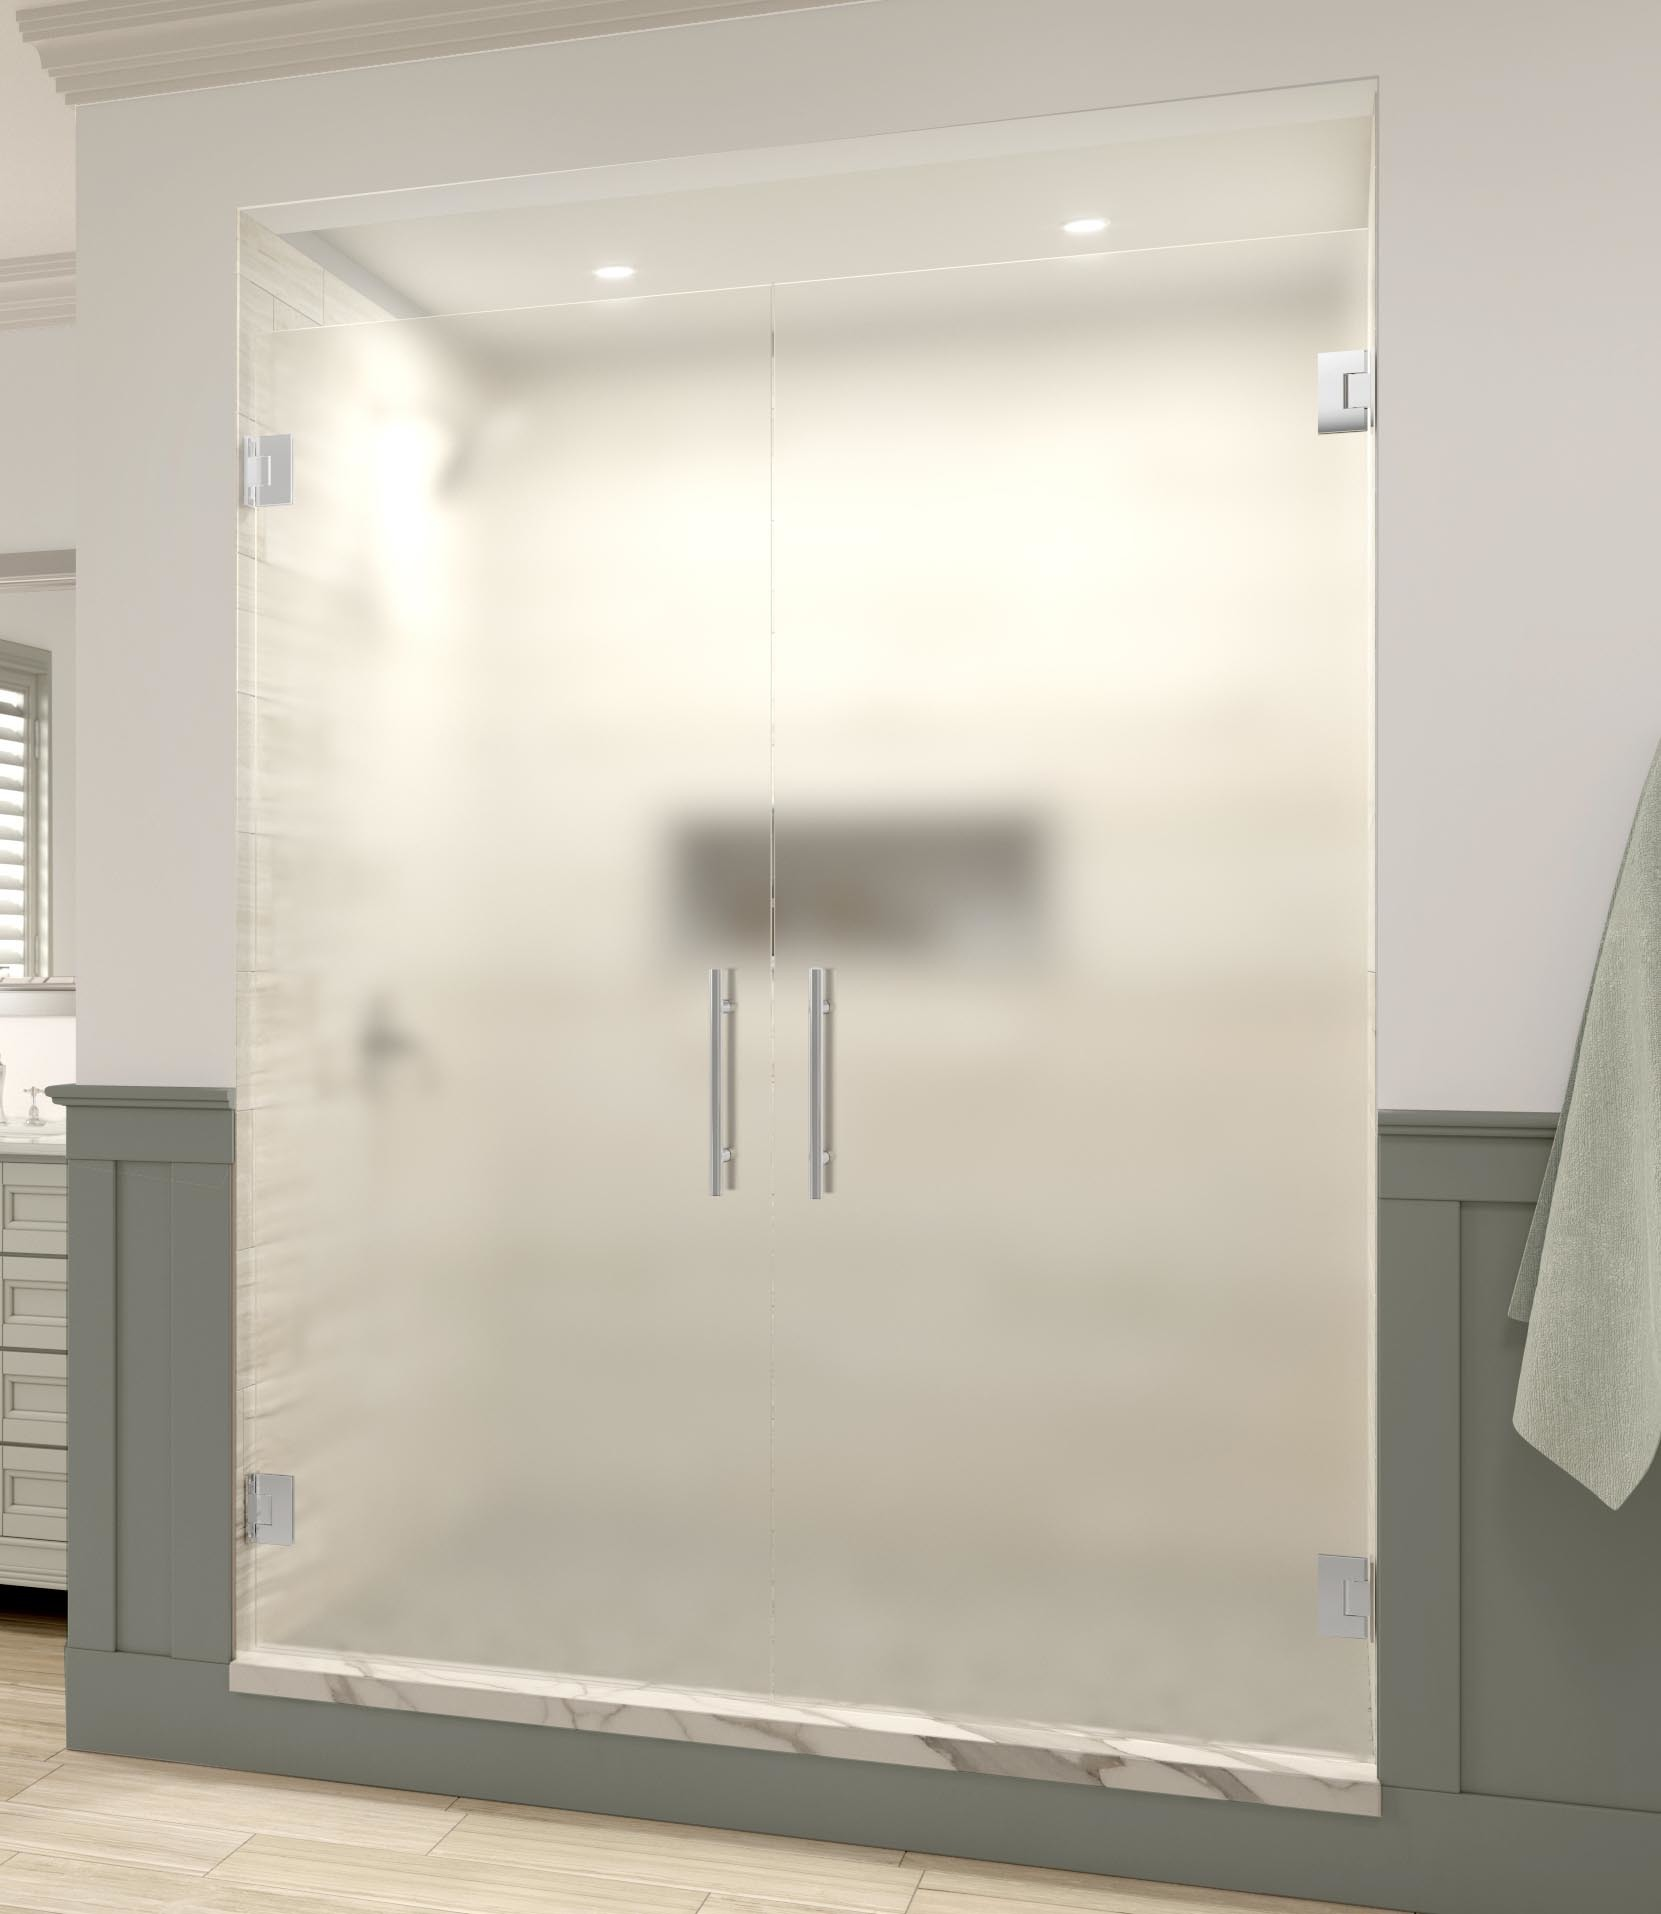 Cleaning Guide How To Clean Your Glass Shower Doors Properly: Dresden Frameless 3/8-inch Glass French Swing…